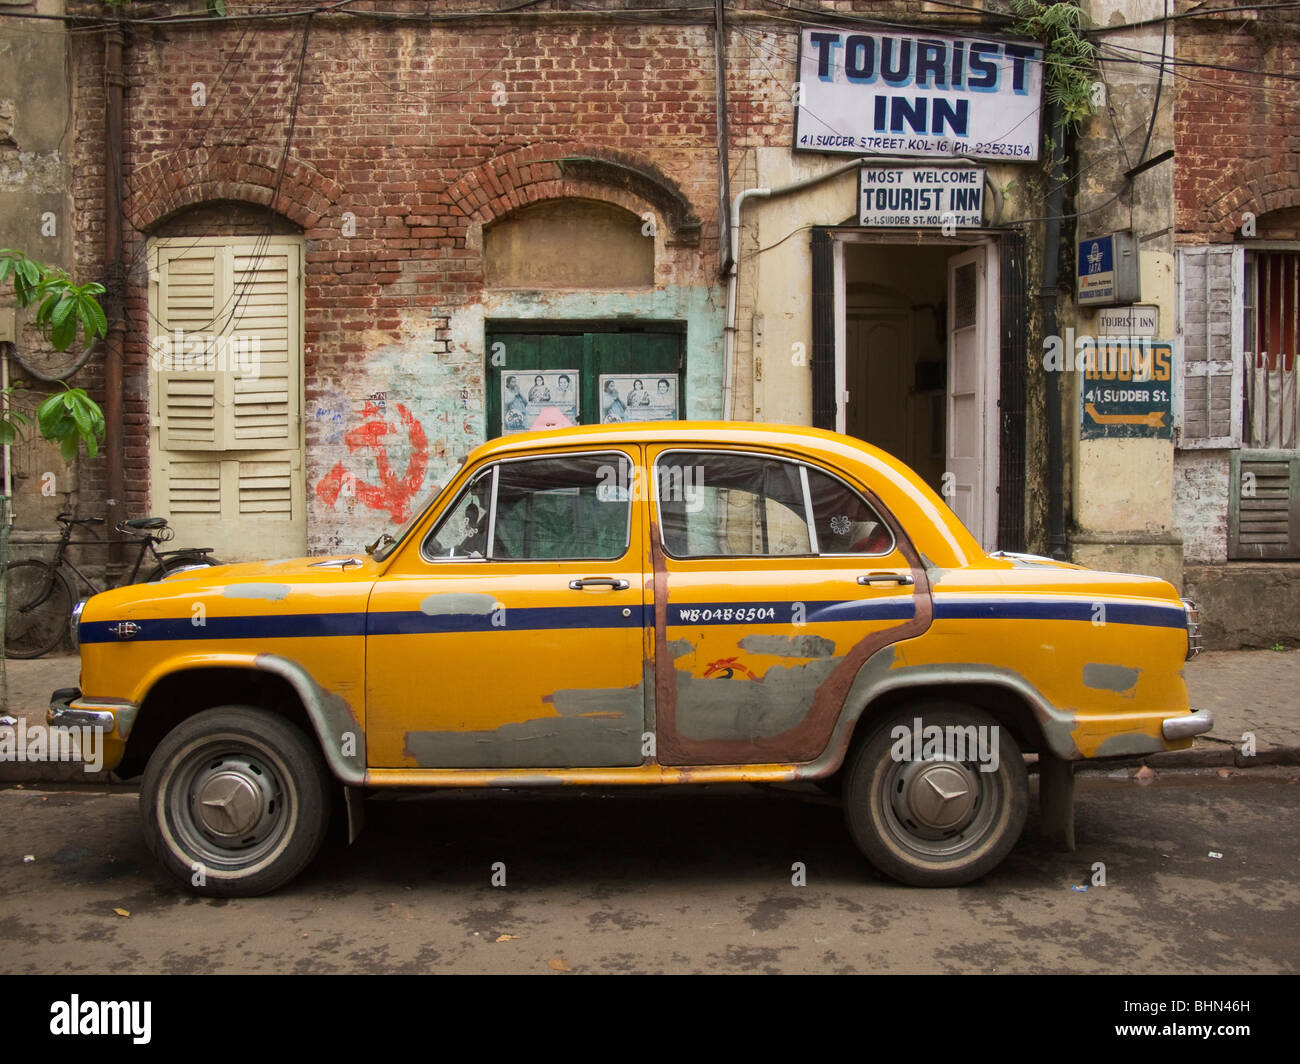 Ambassador taxicab in front of Tourist Inn on Sudder Street, Kolkata, India - Stock Image